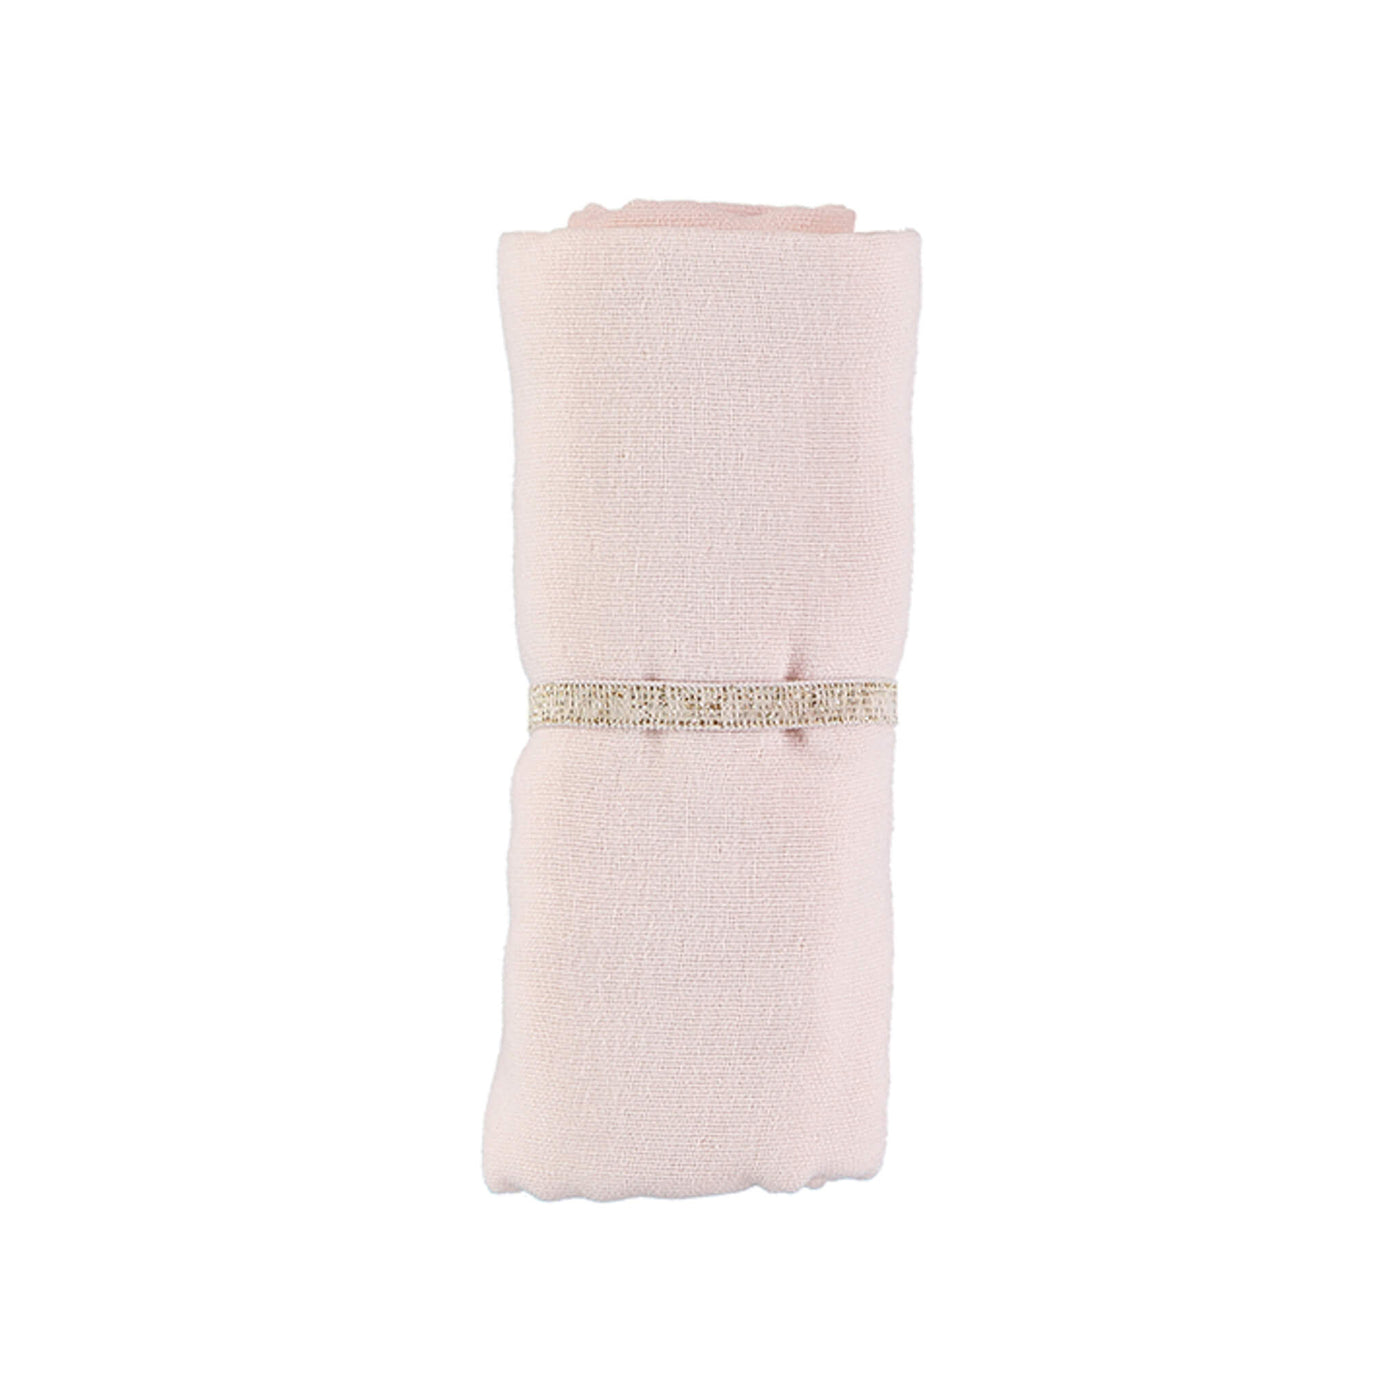 Baby Love Muslin - Dream Pink